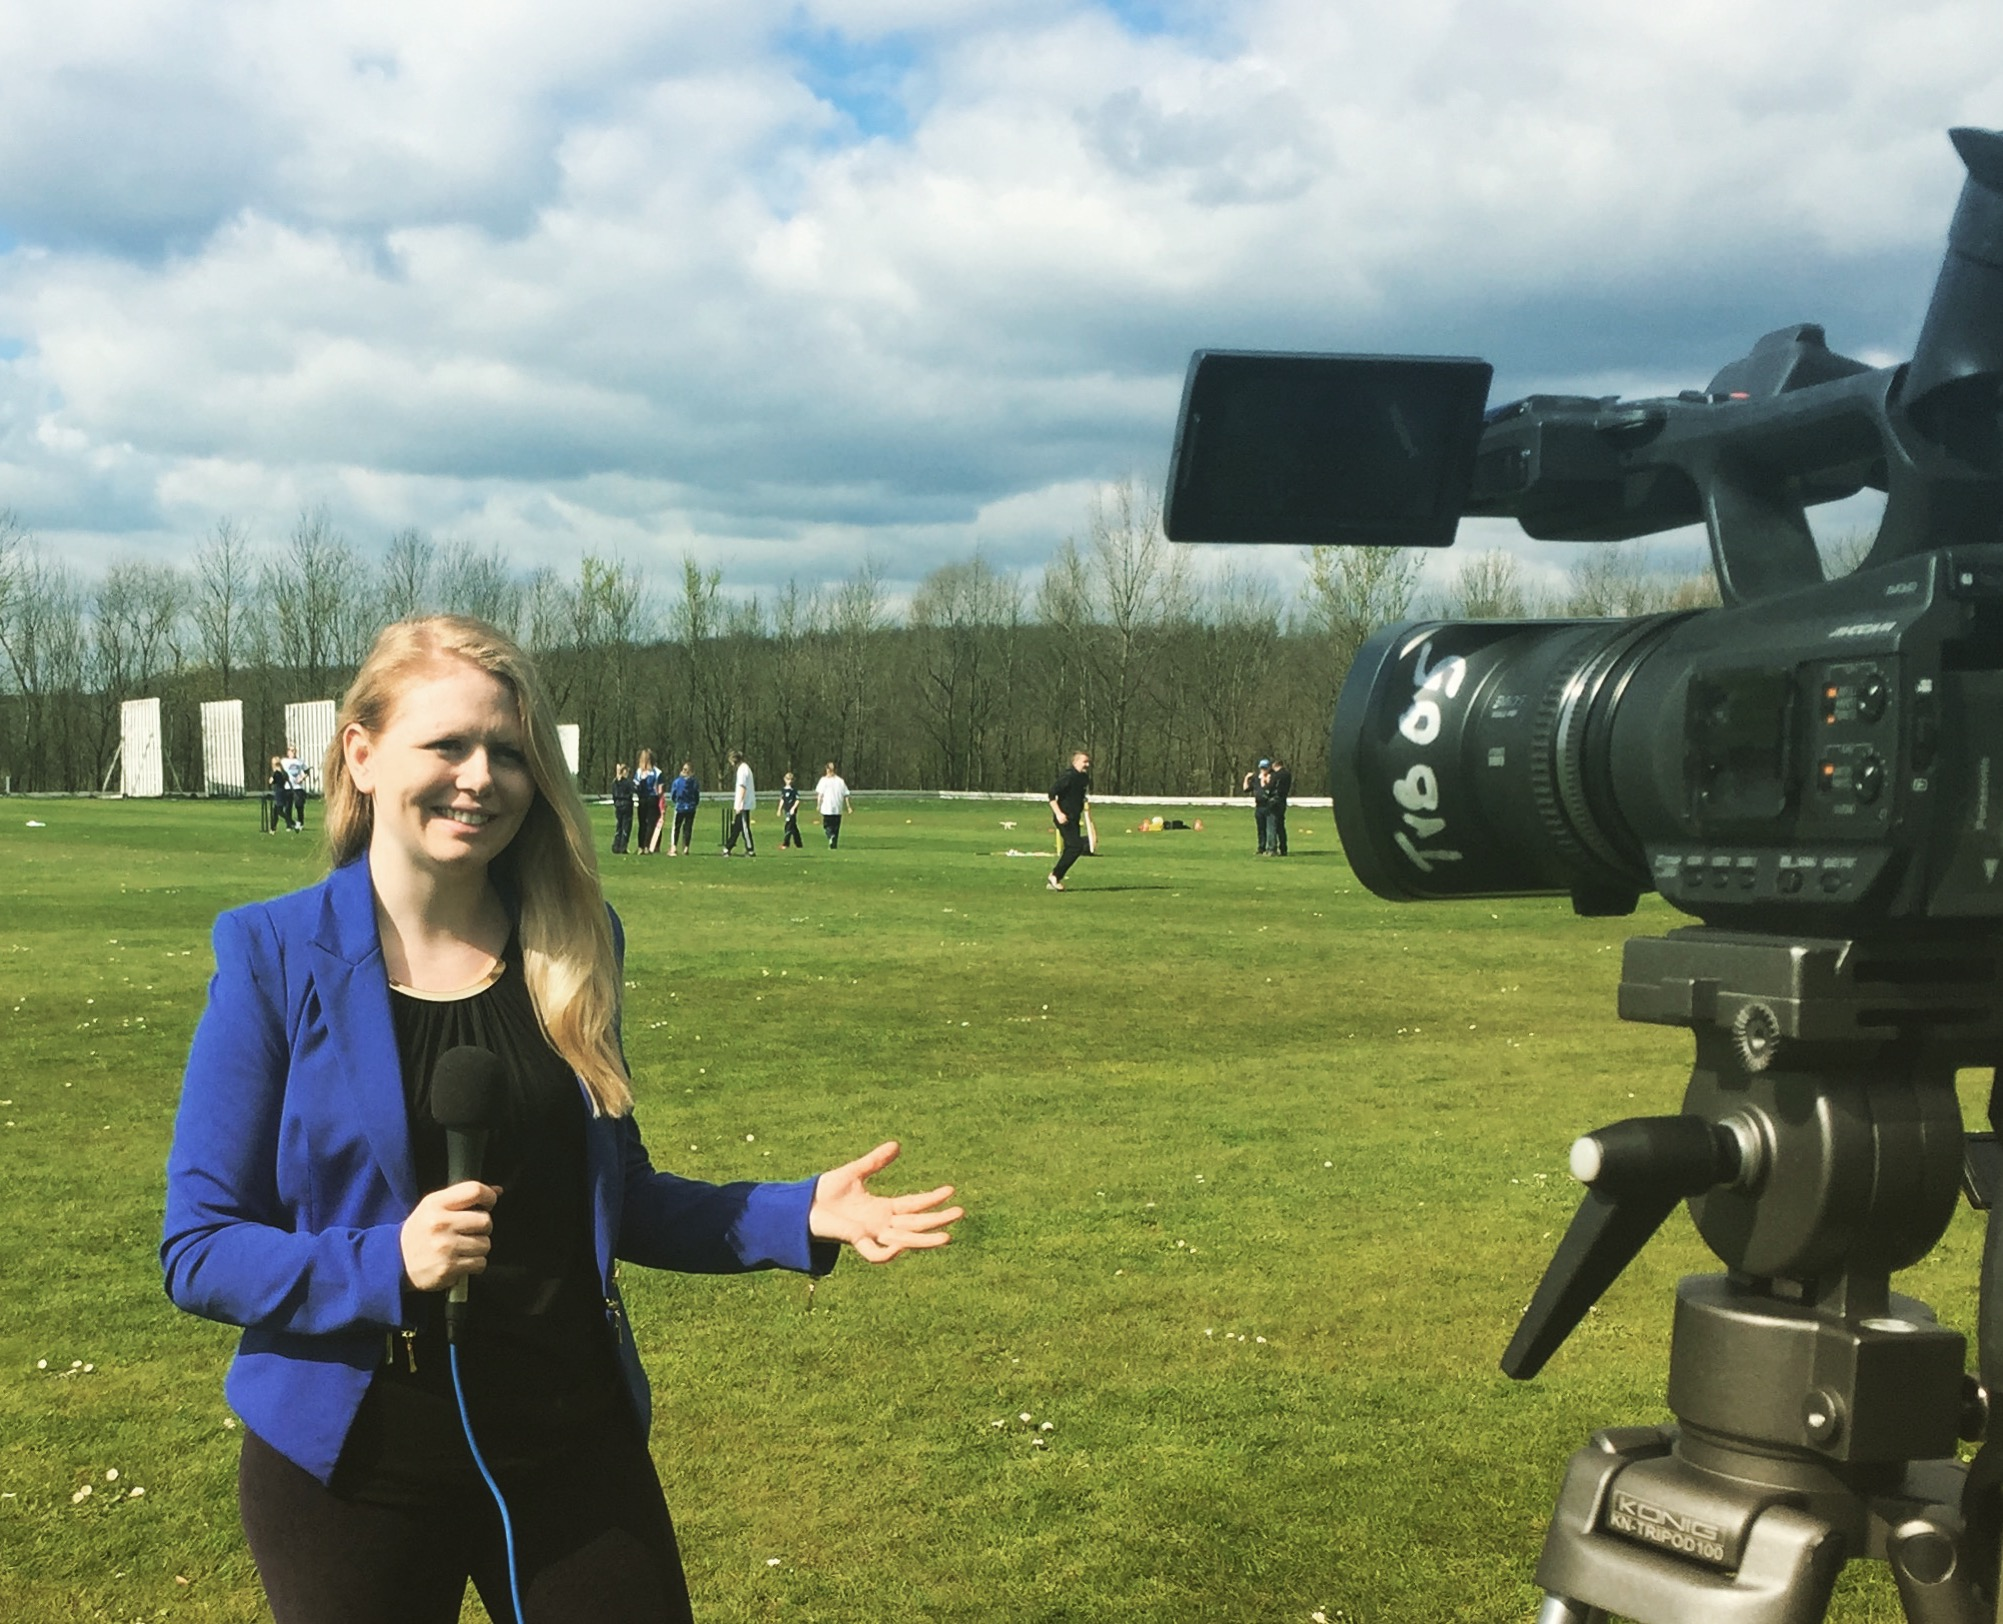 Filming at Denby Cricket Club